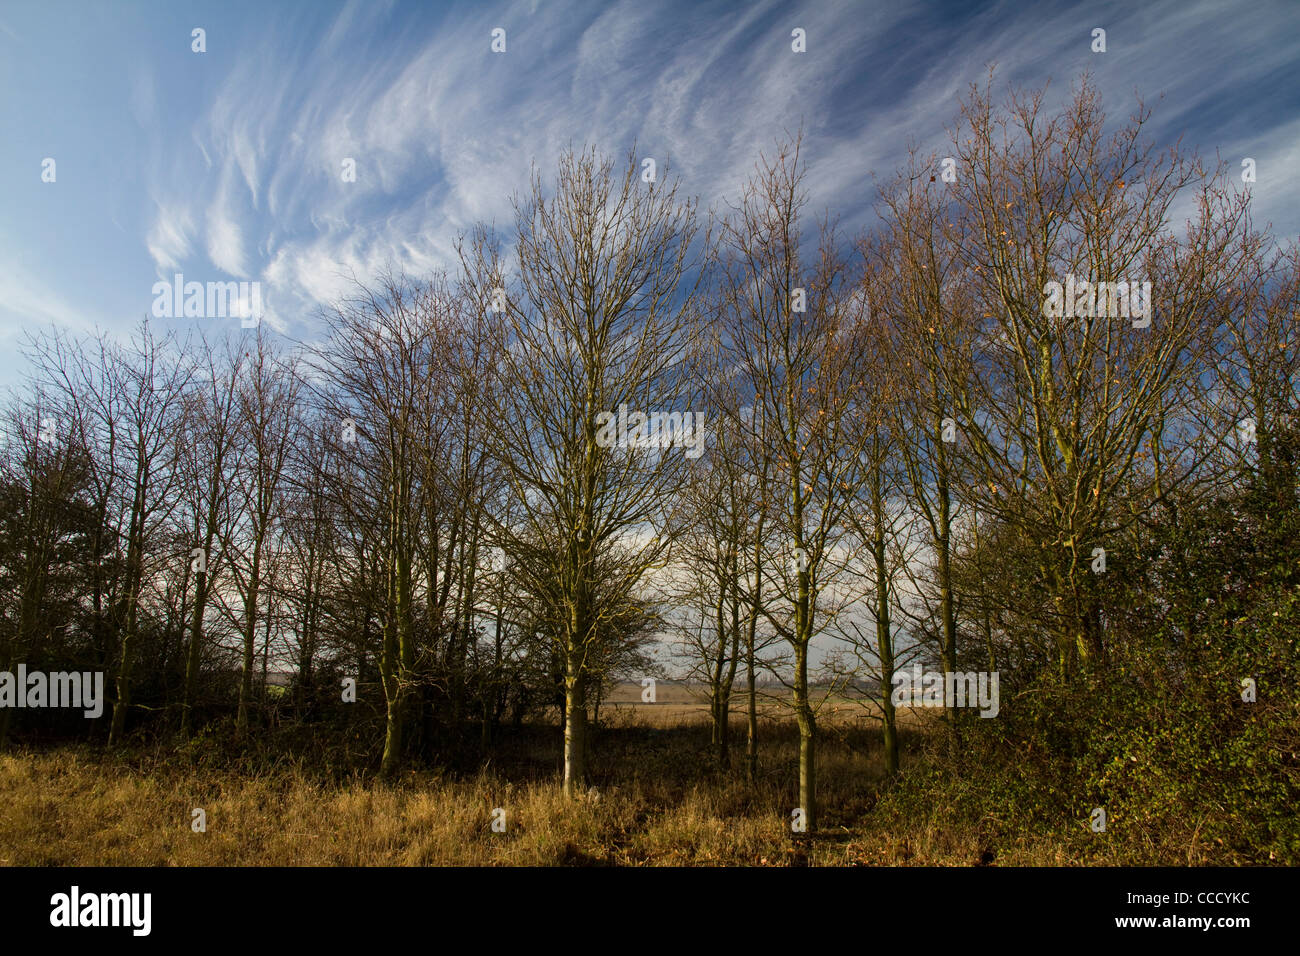 The shape of bare winter birch (betula) trees is reflected in the wispy clouds above on a bright winter's morning Stock Photo